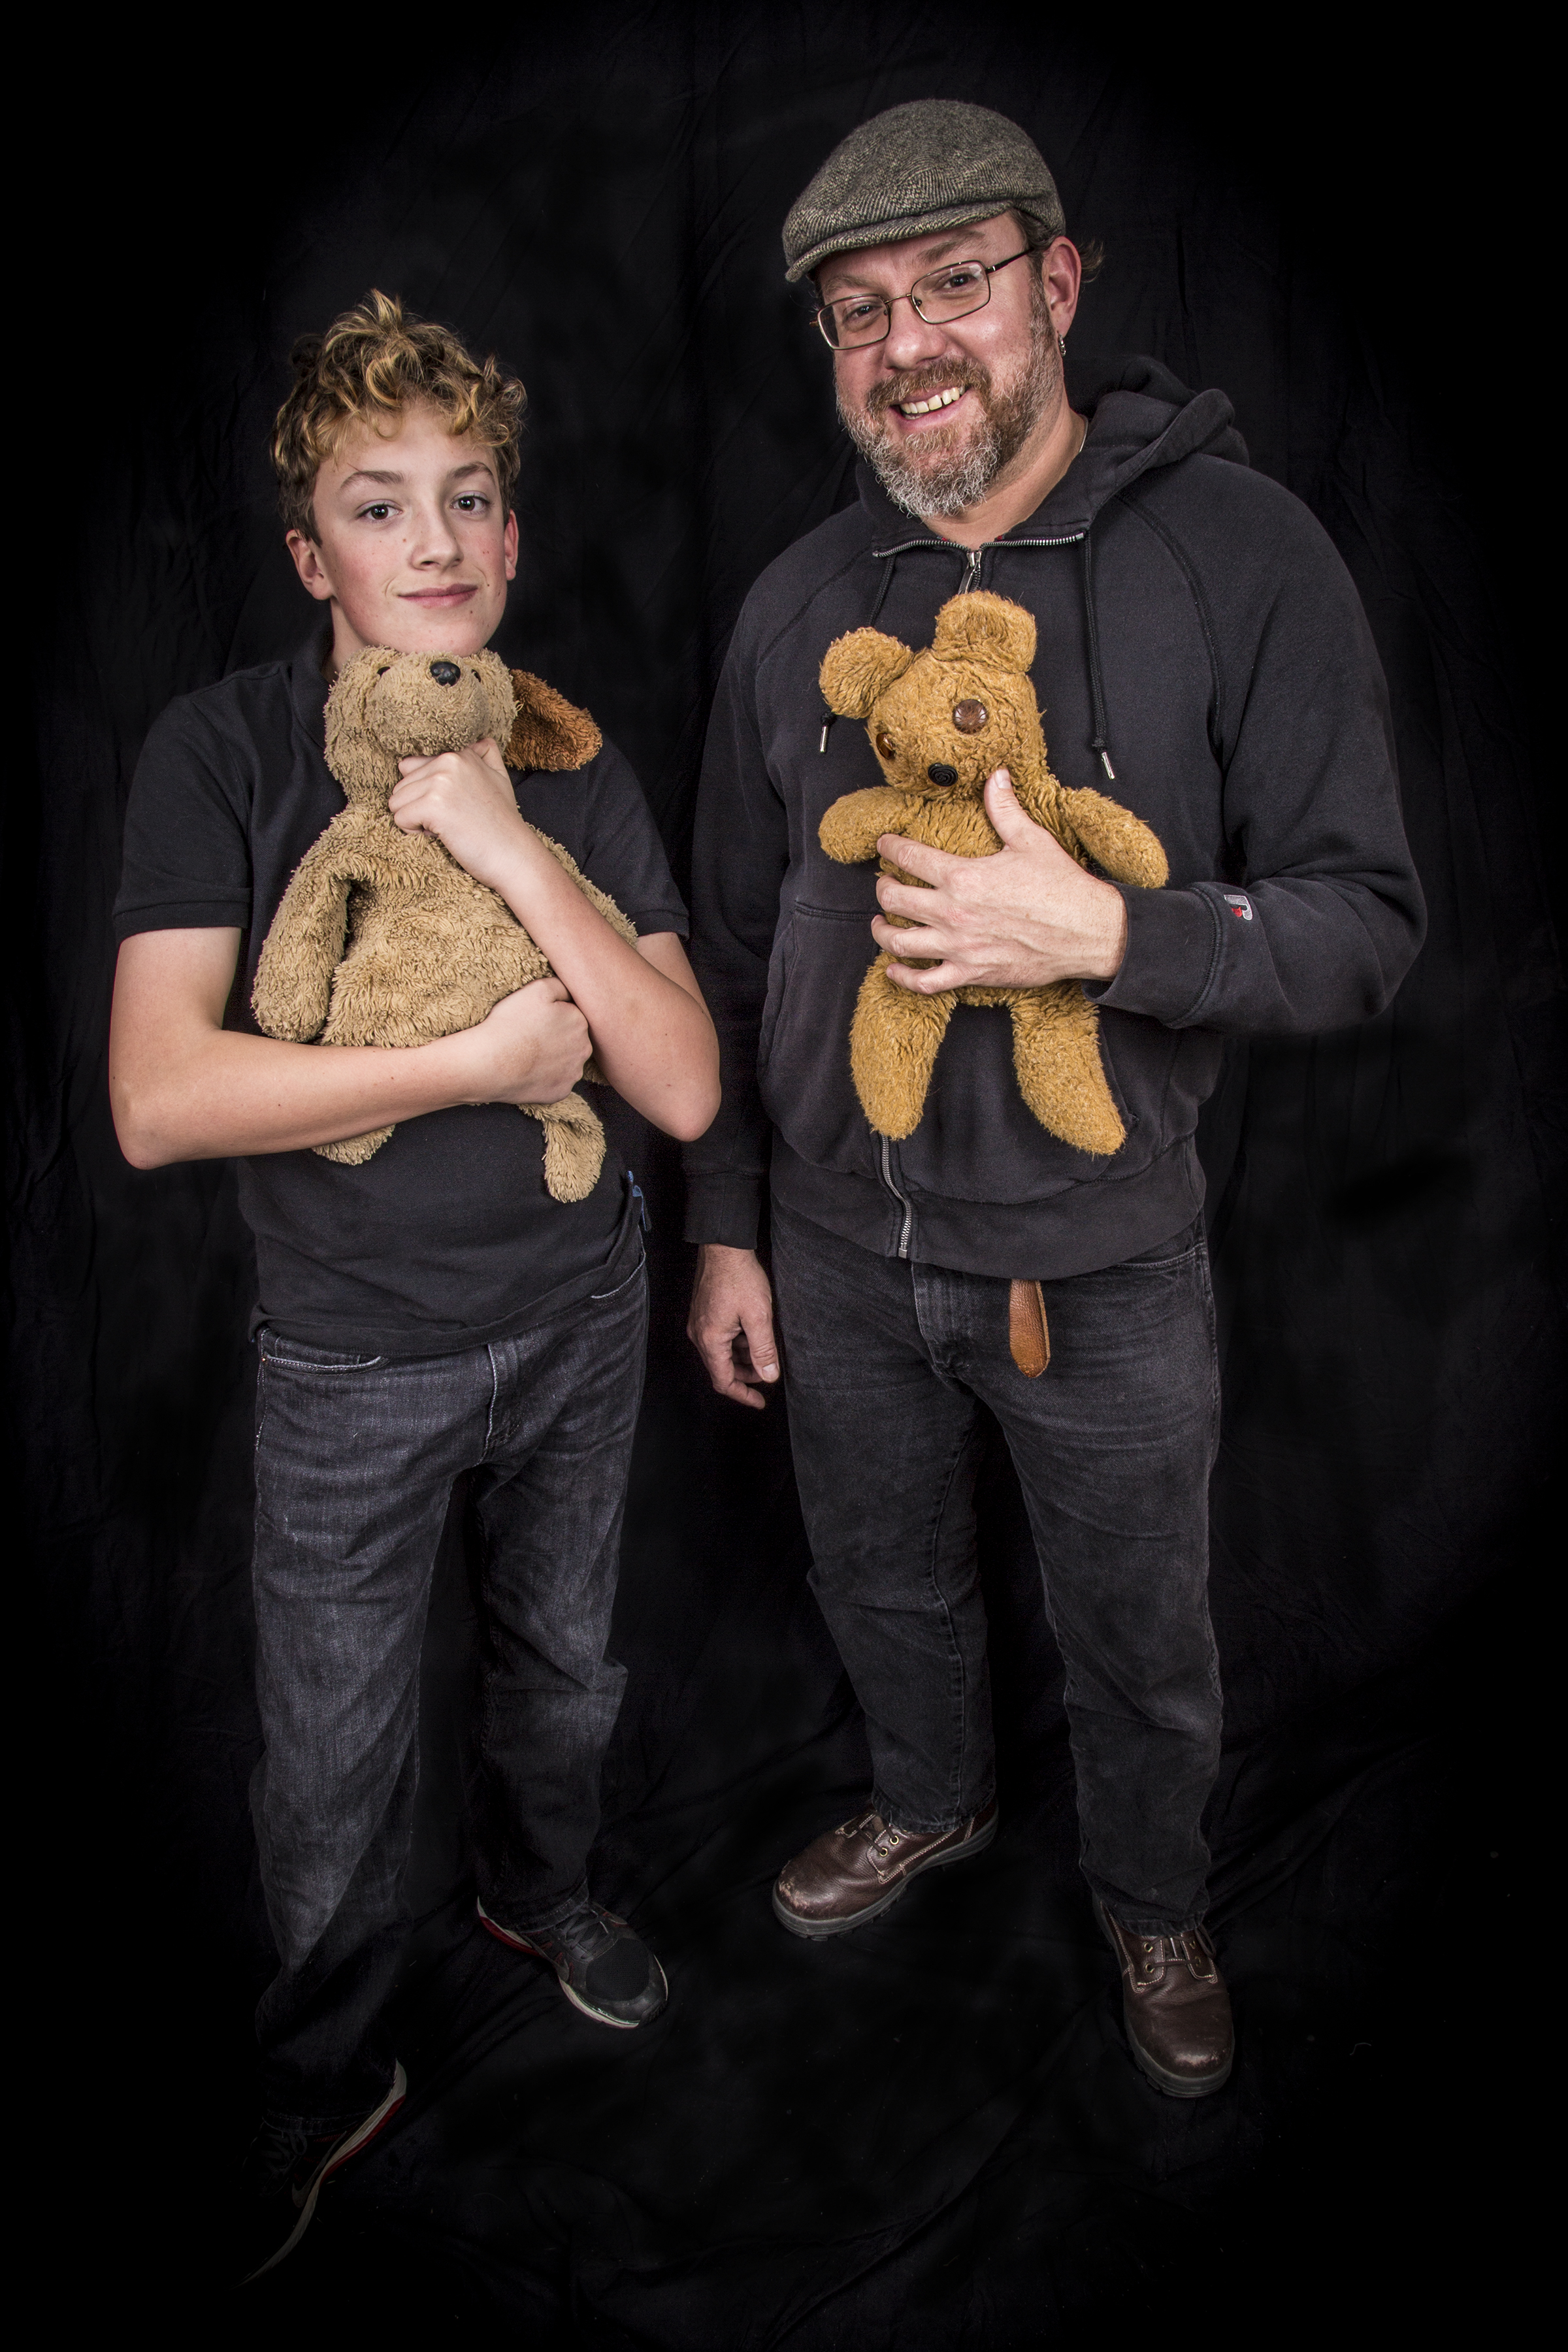 Josh & Ted E. Bear, Abel & Puppy